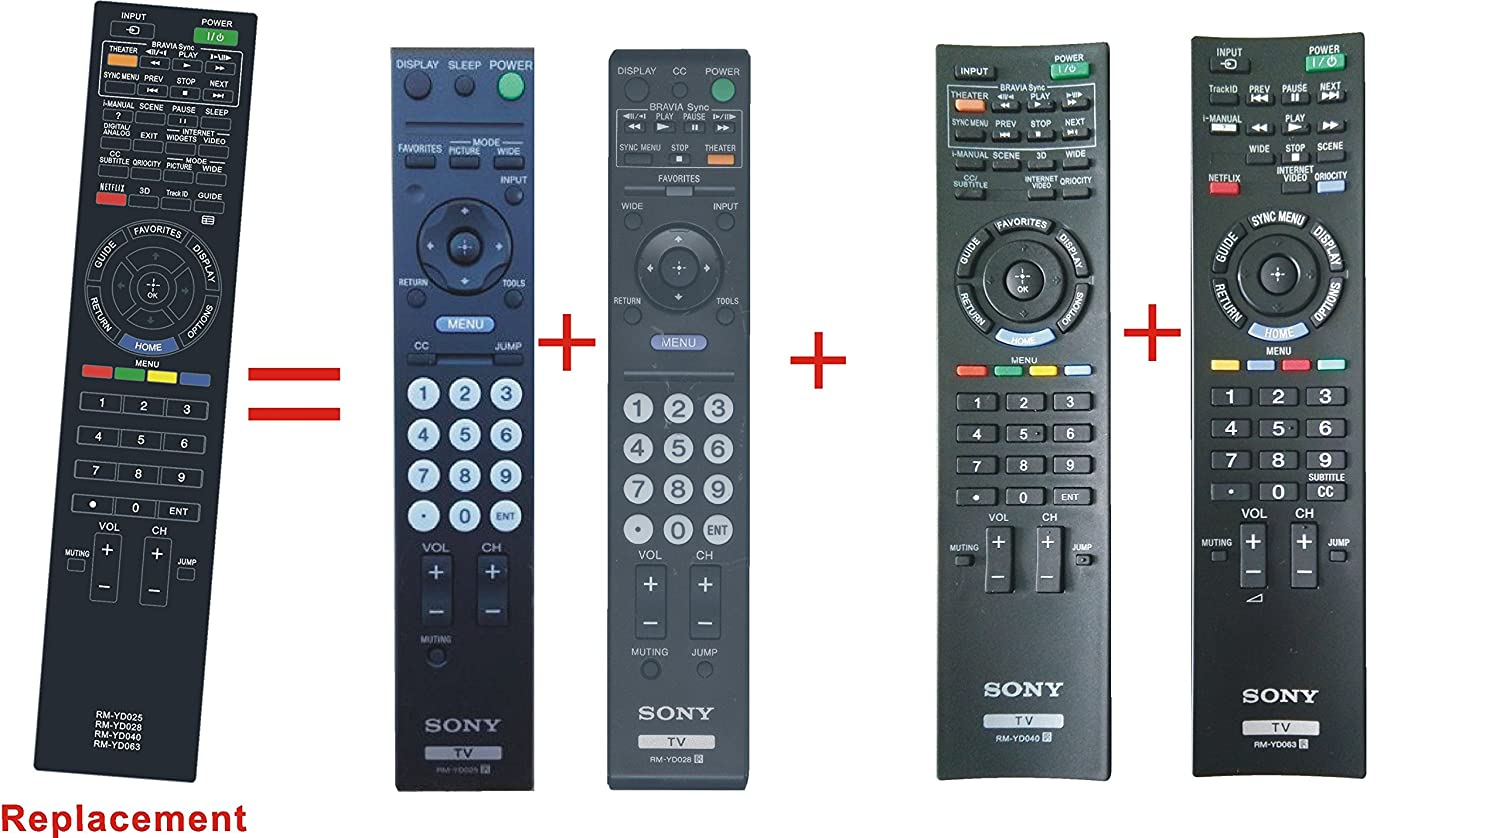 sony tv remote rm yd005. amazon.com: new replaced remote control rm-yd025 rm-yd024 rm-yd018 rm-yd021 rm-yd017 rm-yd014 rm-yd028 rm-yd027 rm-yd156 rm-yd026 fit for sony bravia lcd tv sony tv remote rm yd005 1